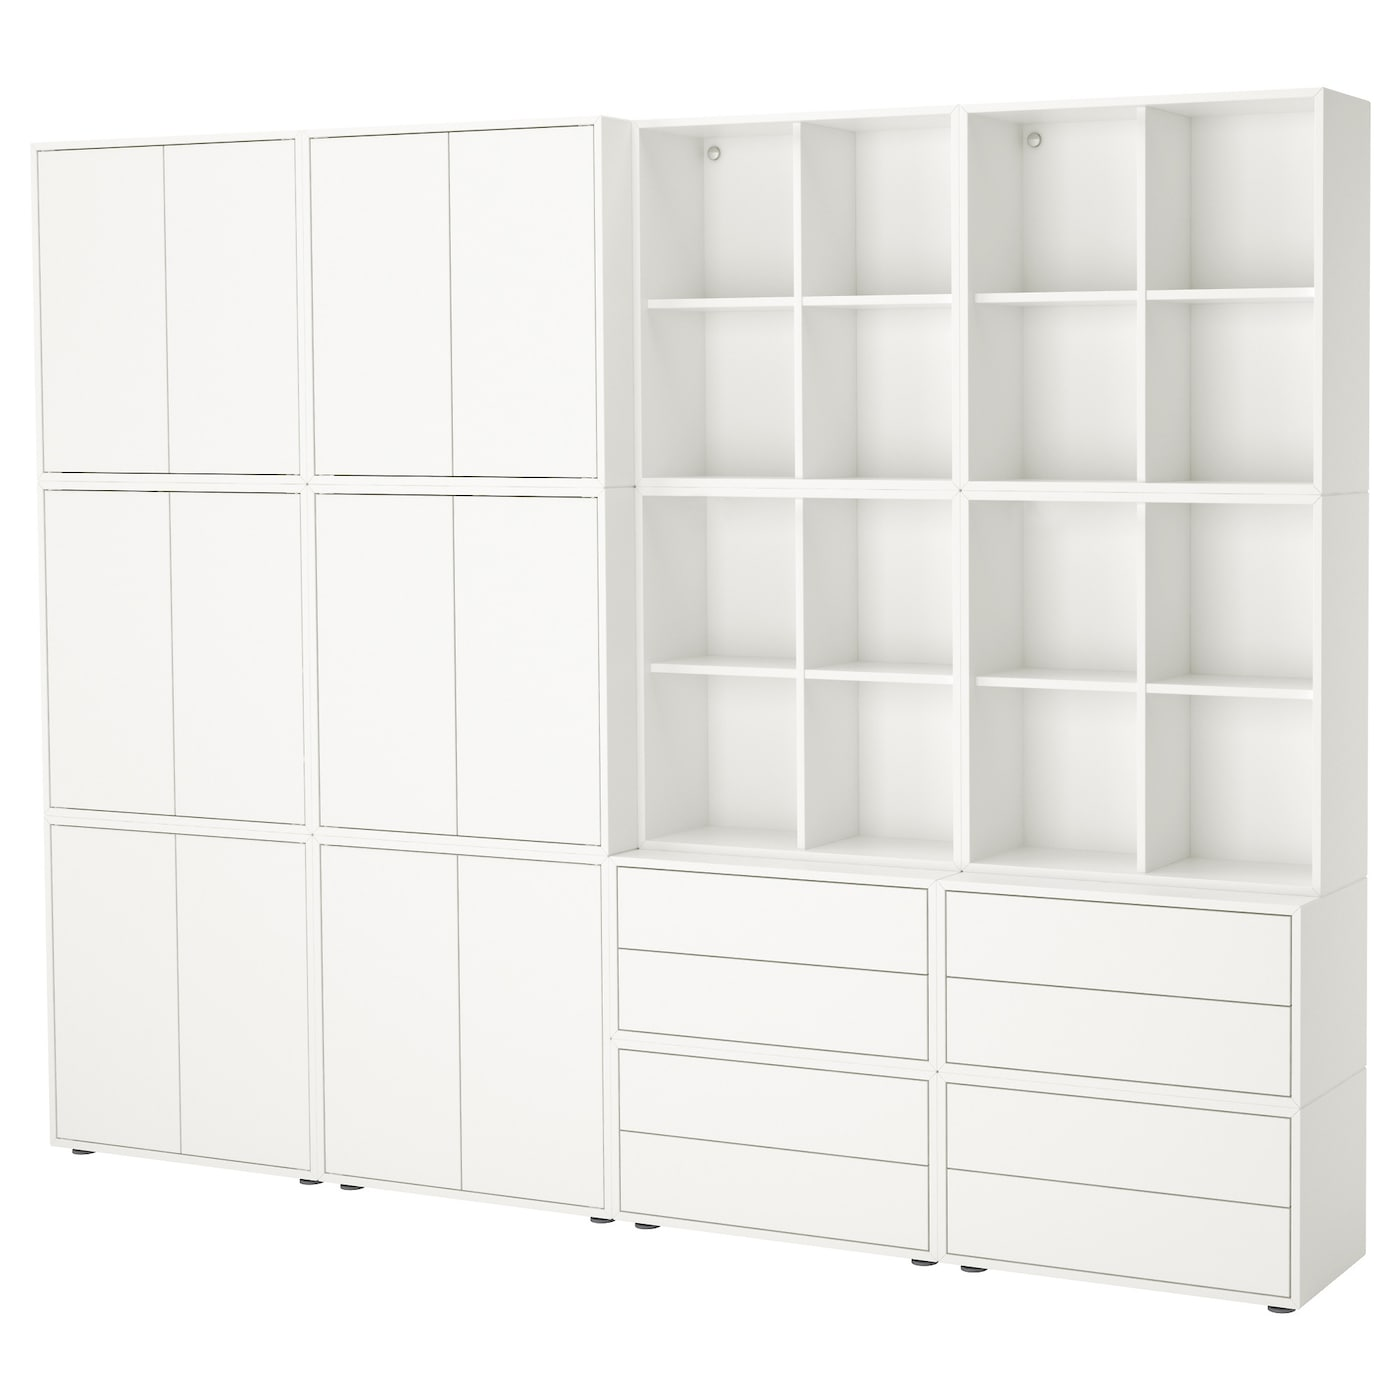 eket cabinet combination with feet white 280 x 35 x 212 cm ikea. Black Bedroom Furniture Sets. Home Design Ideas